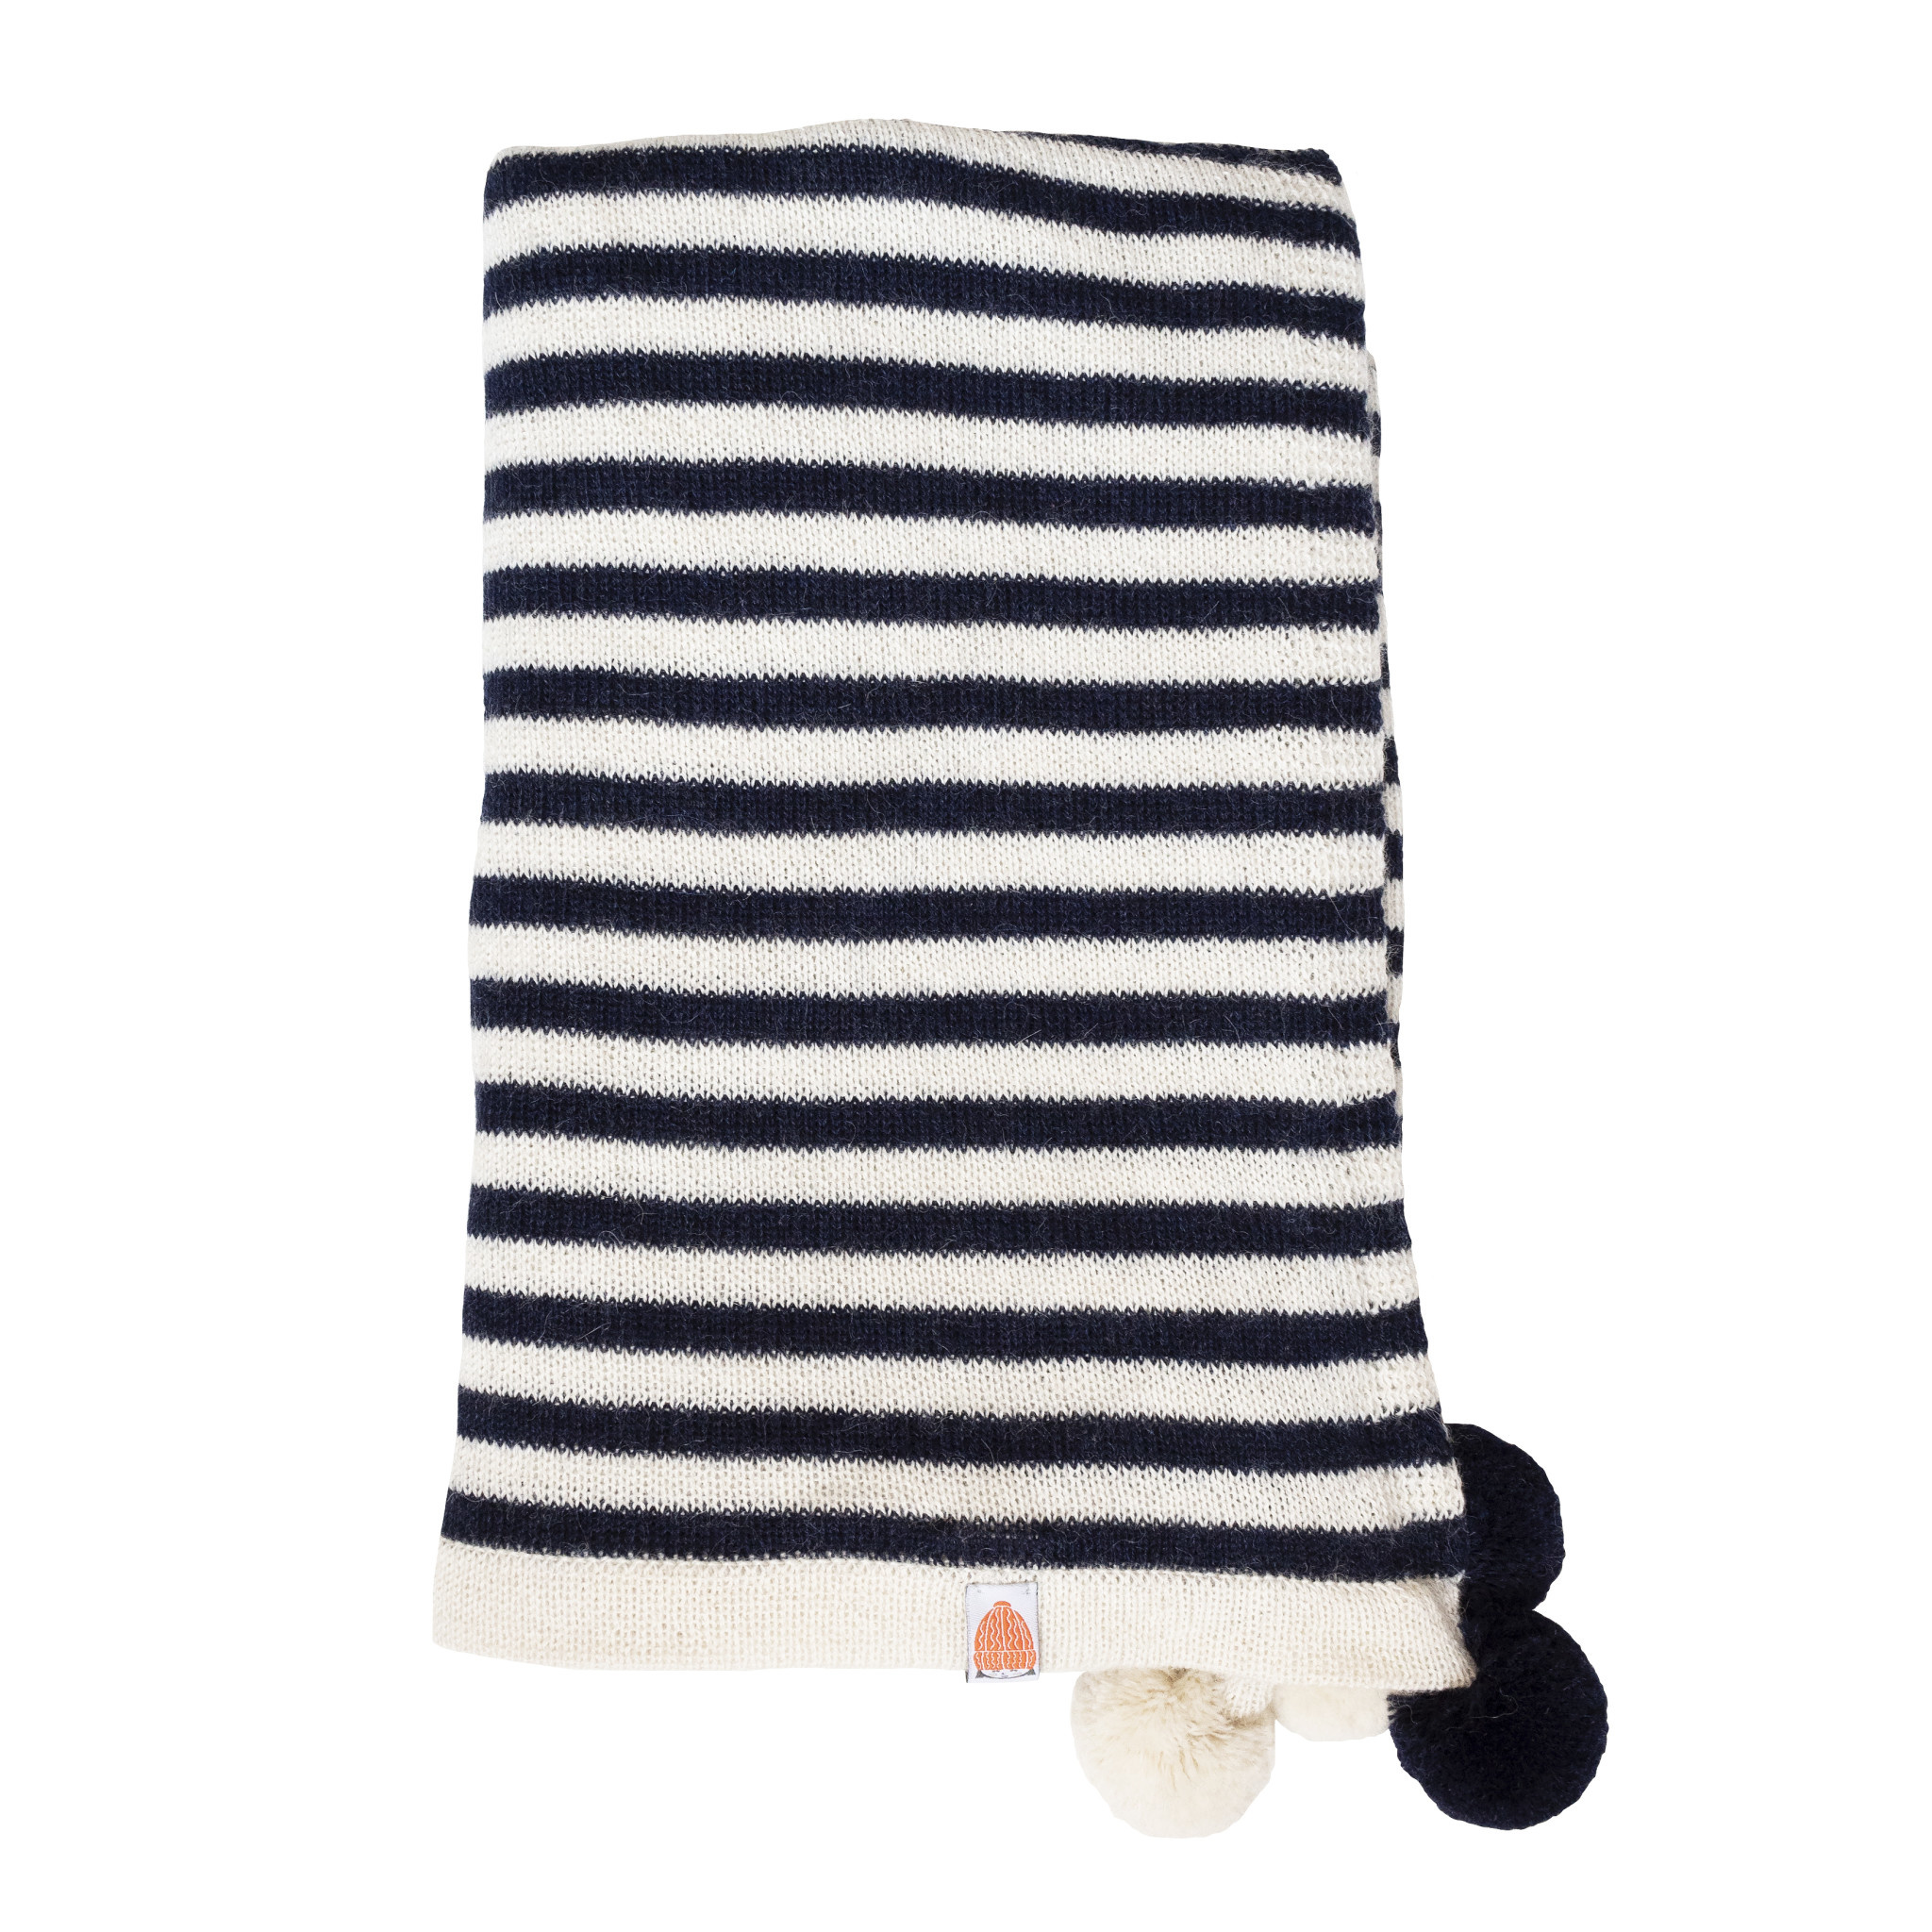 Shit That I Knit Pardy Wrap in Navy and White Stripes